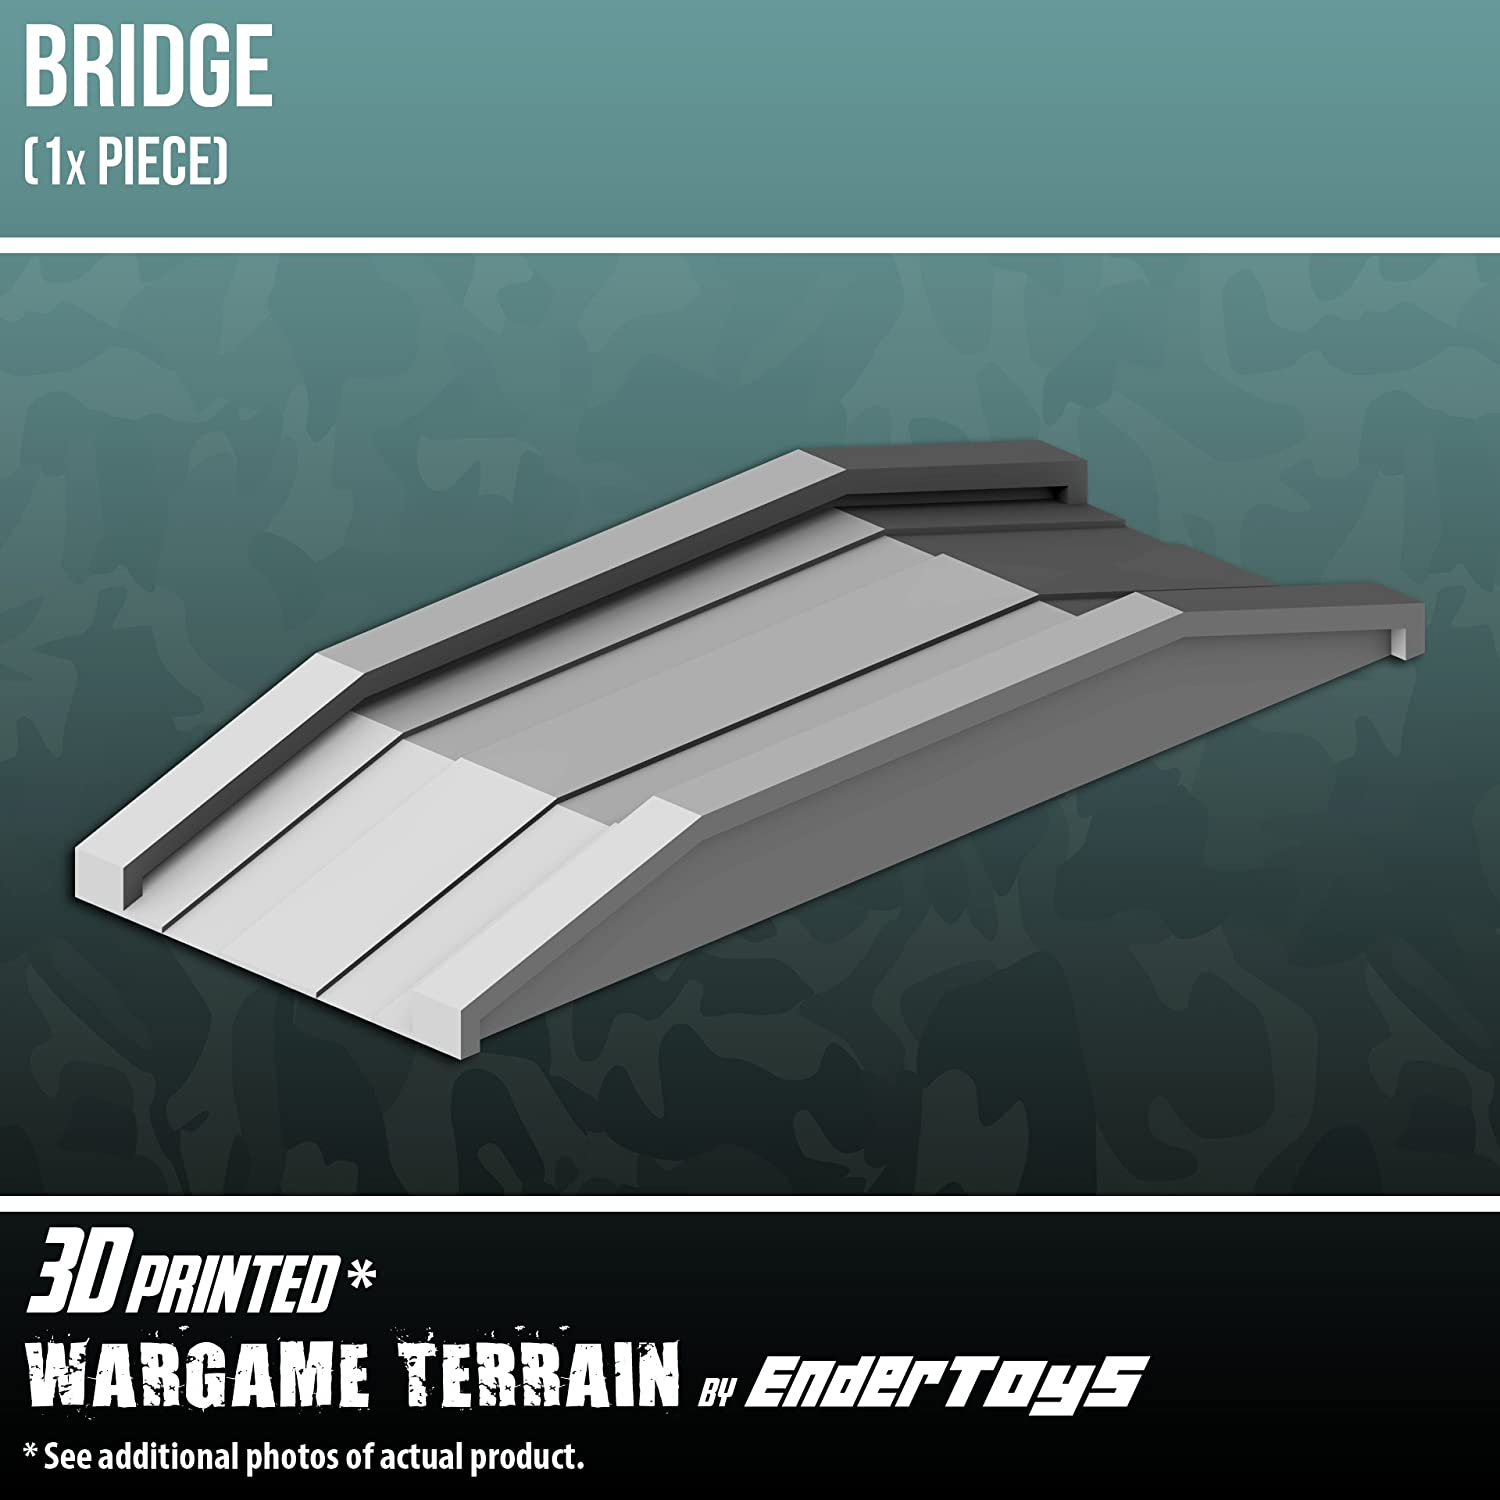 Bridge, Terrain Scenery for Tabletop 28mm Miniatures Wargame, 3D ...